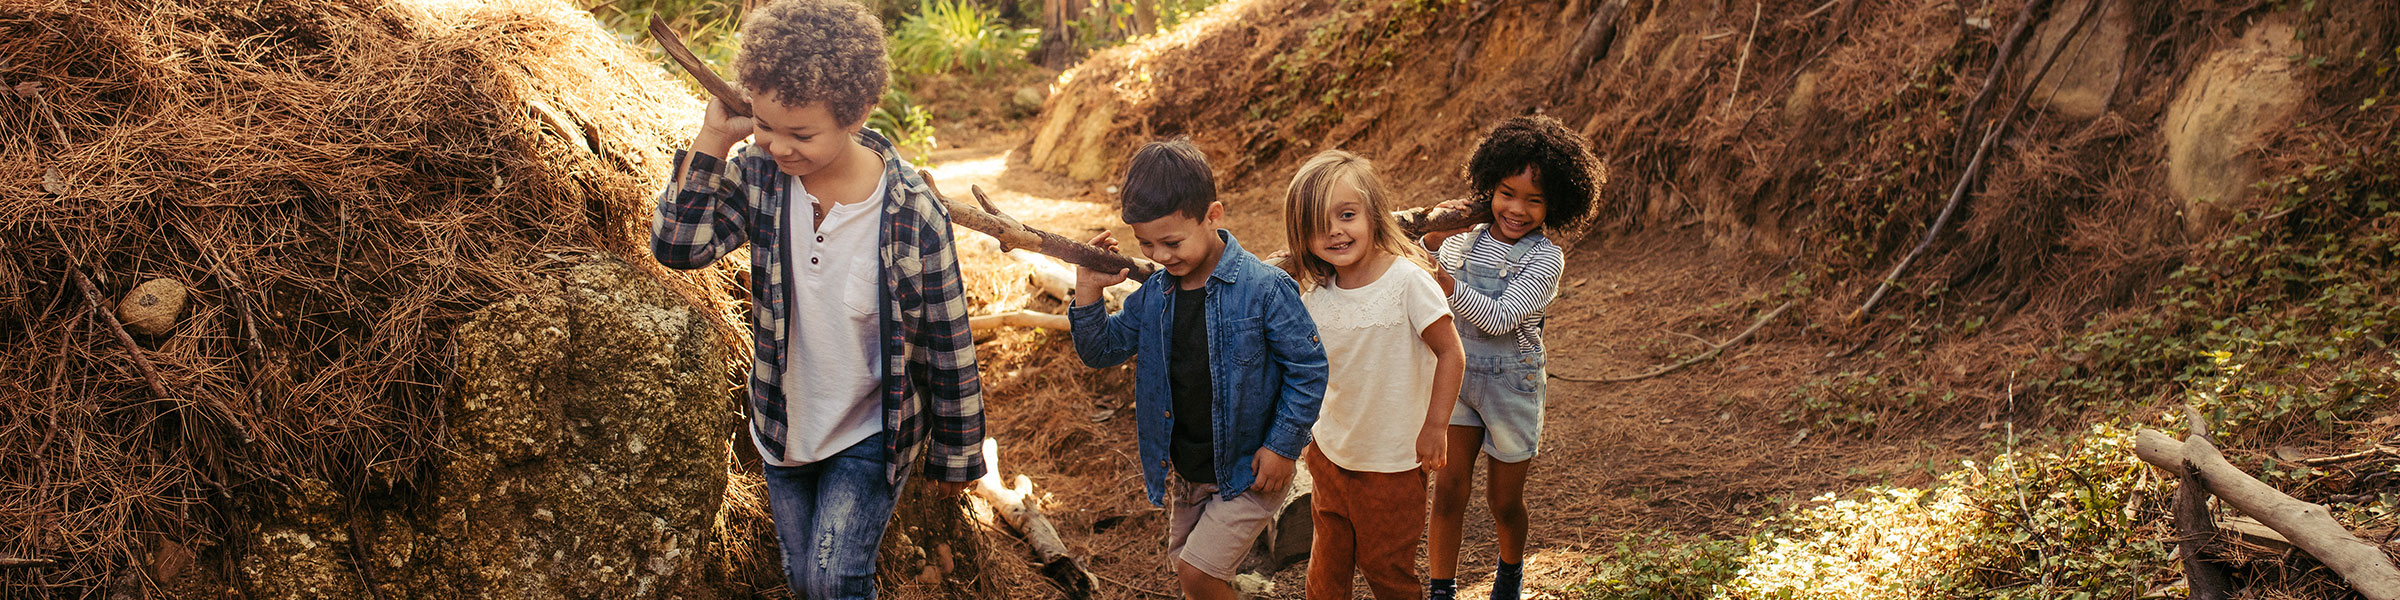 2019 AMI Annual Report Cover Children Exploring Outdoors